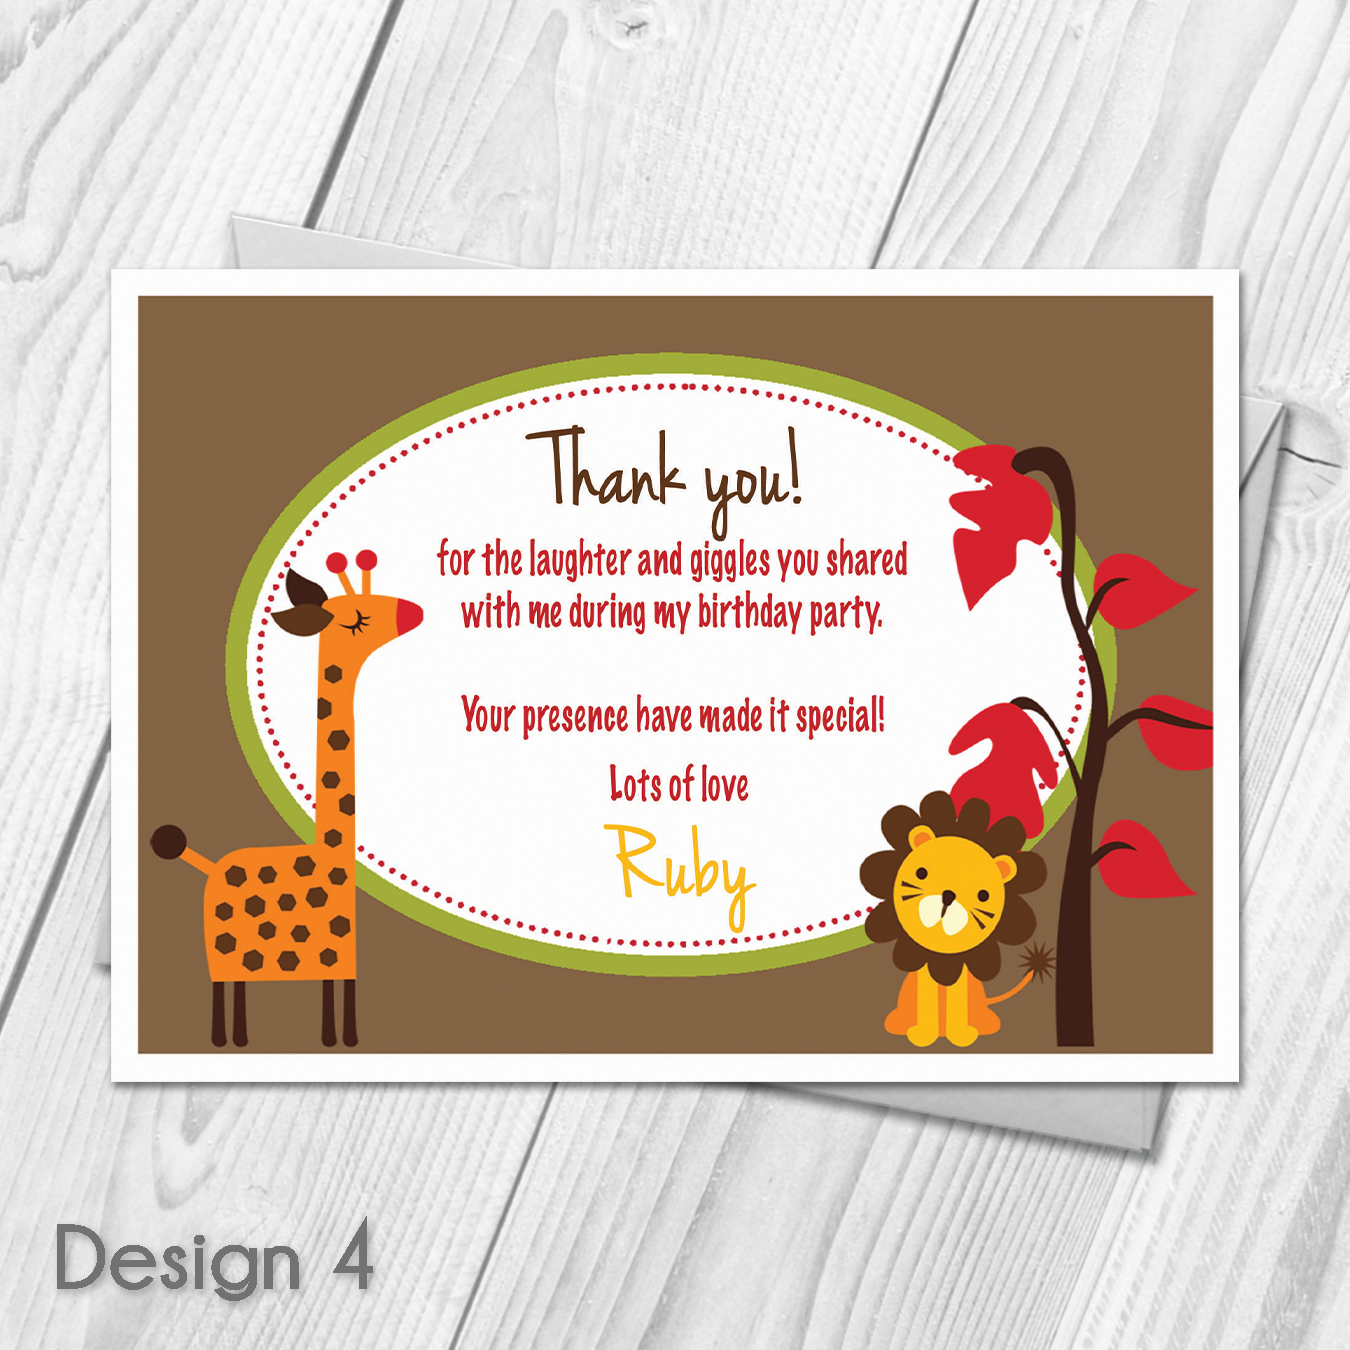 Custom Made With Your Own Personalised Text Photo Product Specifications Choose Your Desi Thank You Cards From Kids Childrens Birthday Party Thank You Cards